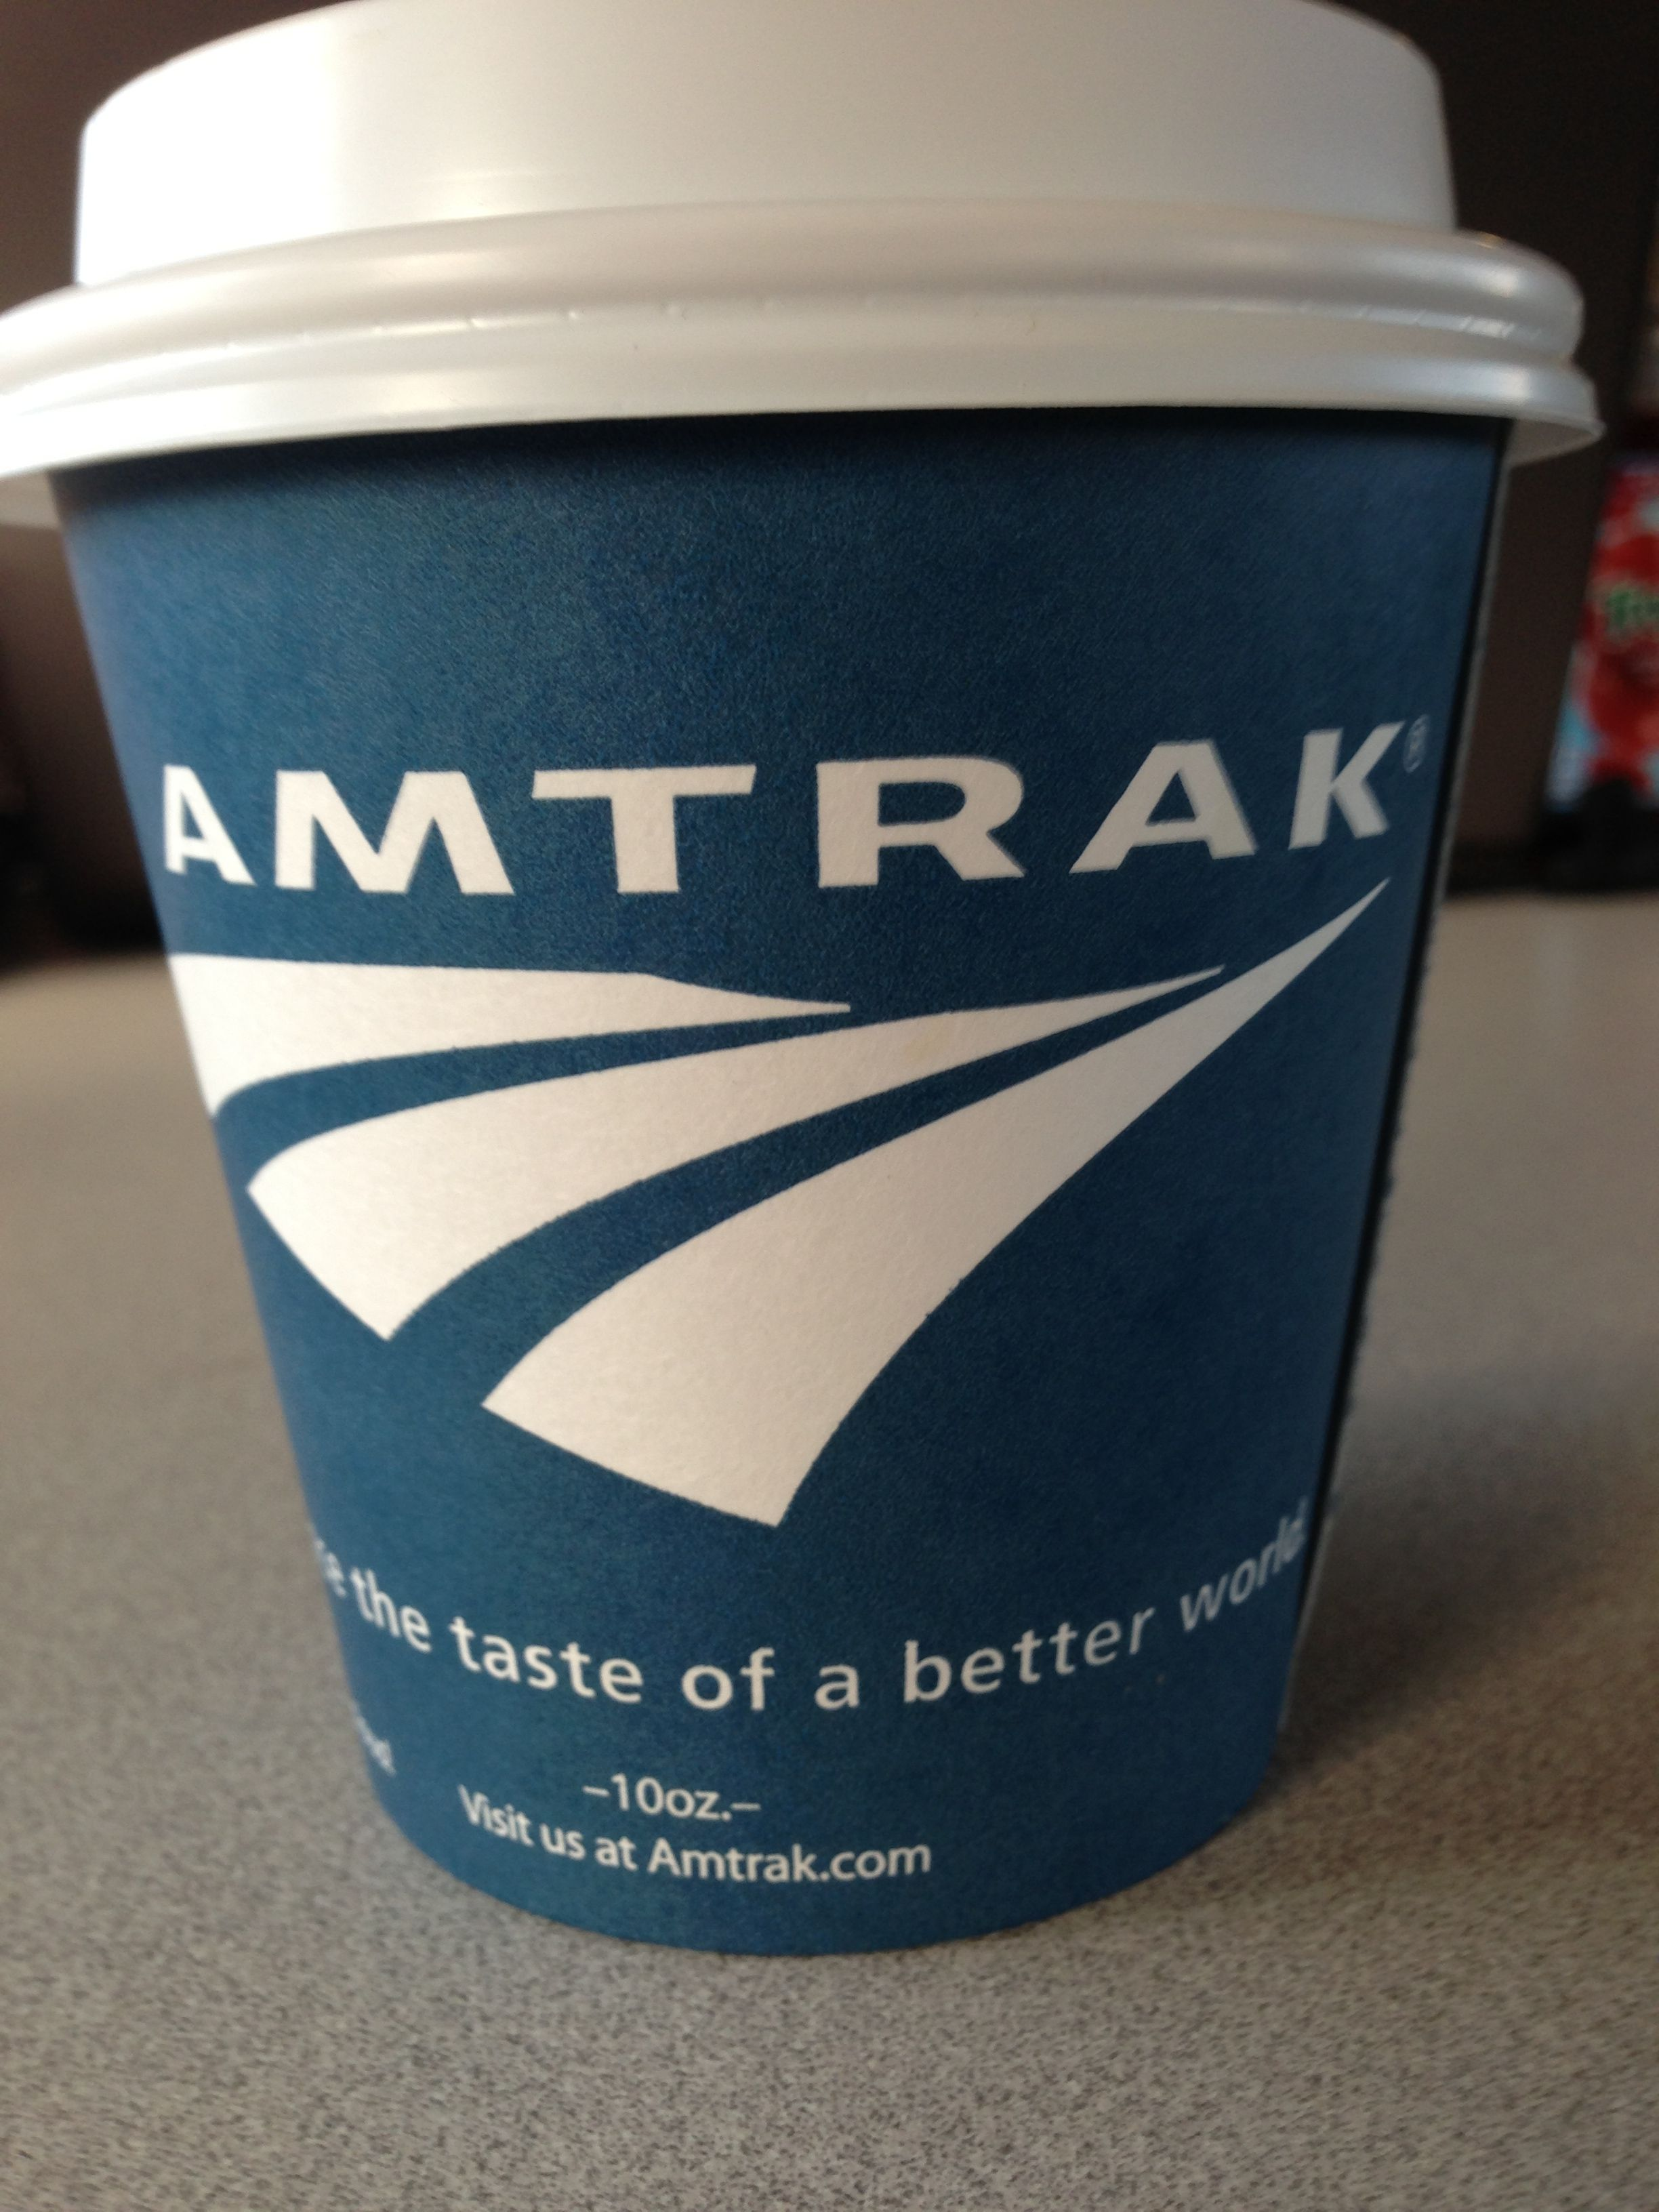 Sip coffee, chat with friends or listen to music when you ride Amtrak to Charlotte, NC!